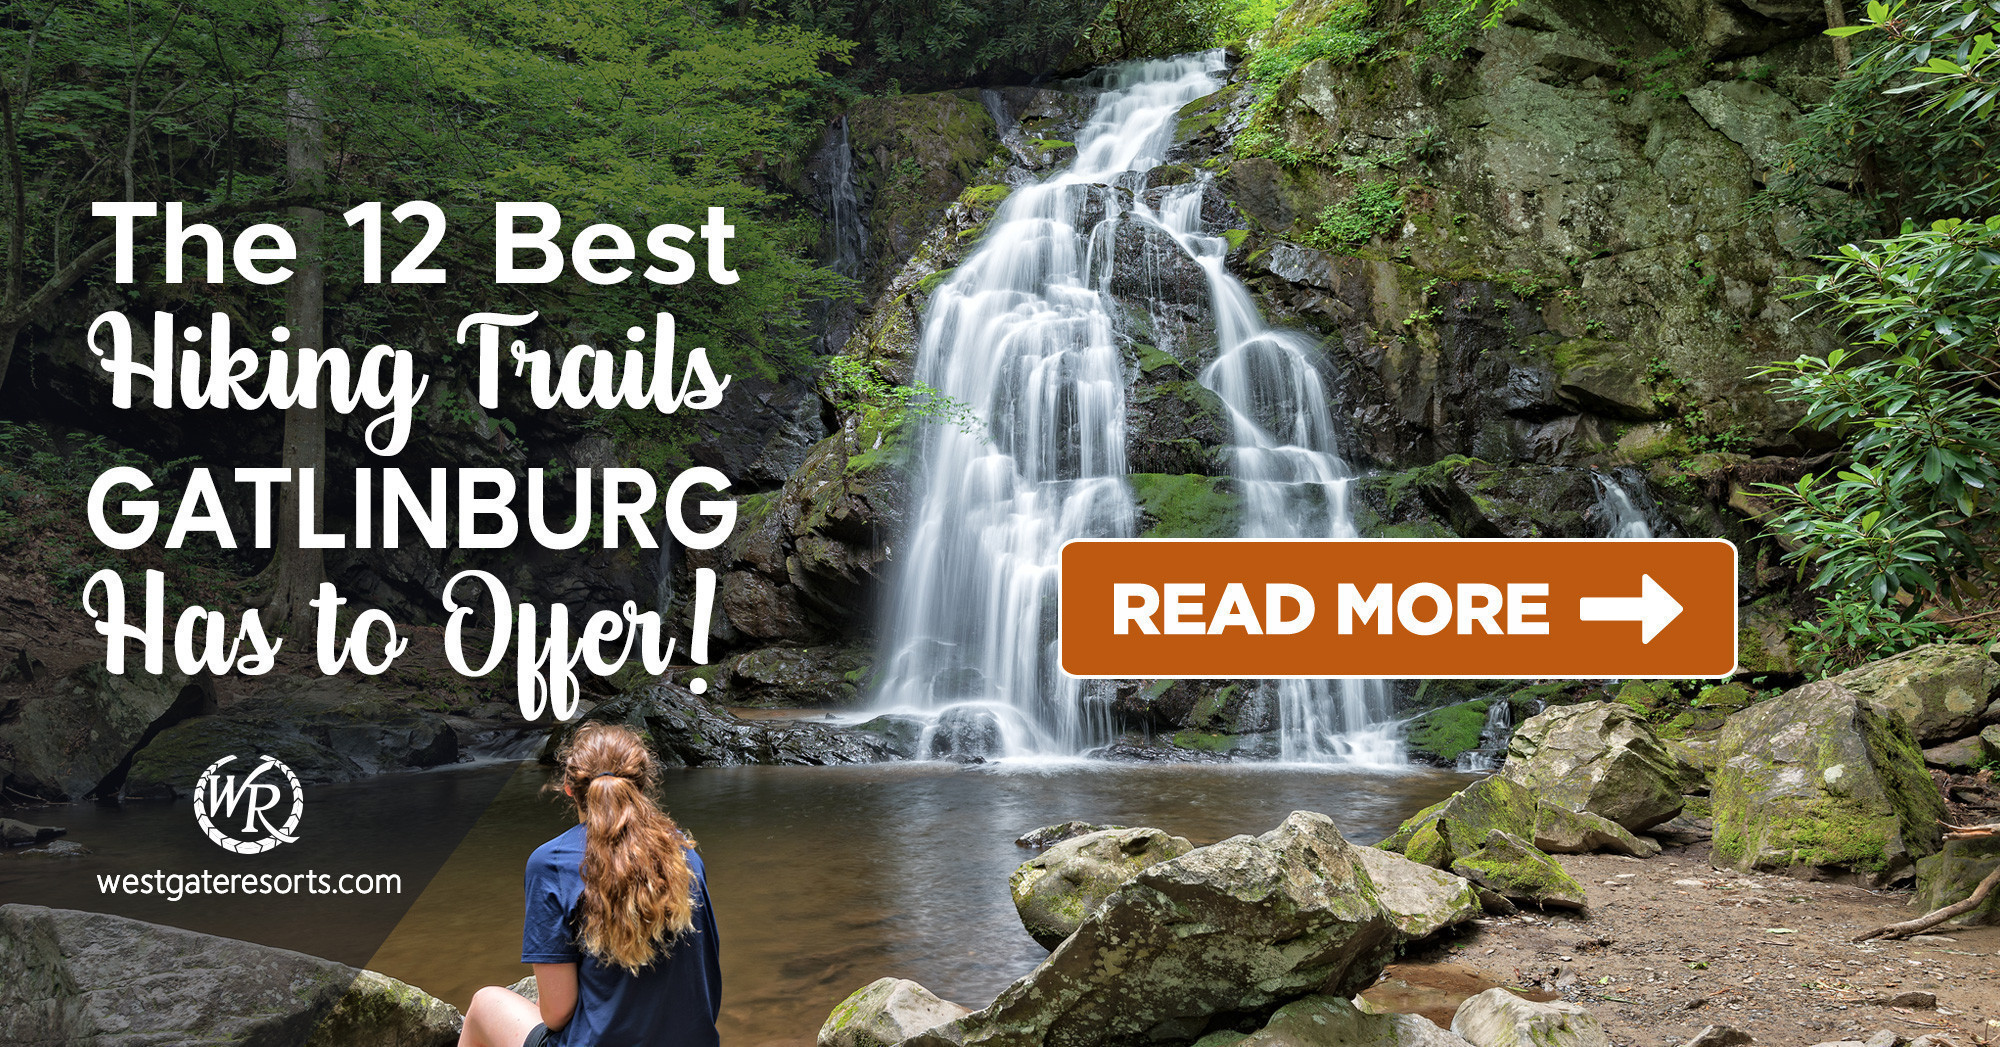 The 12 Best Hiking Trails Gatlinburg Has to Offer!